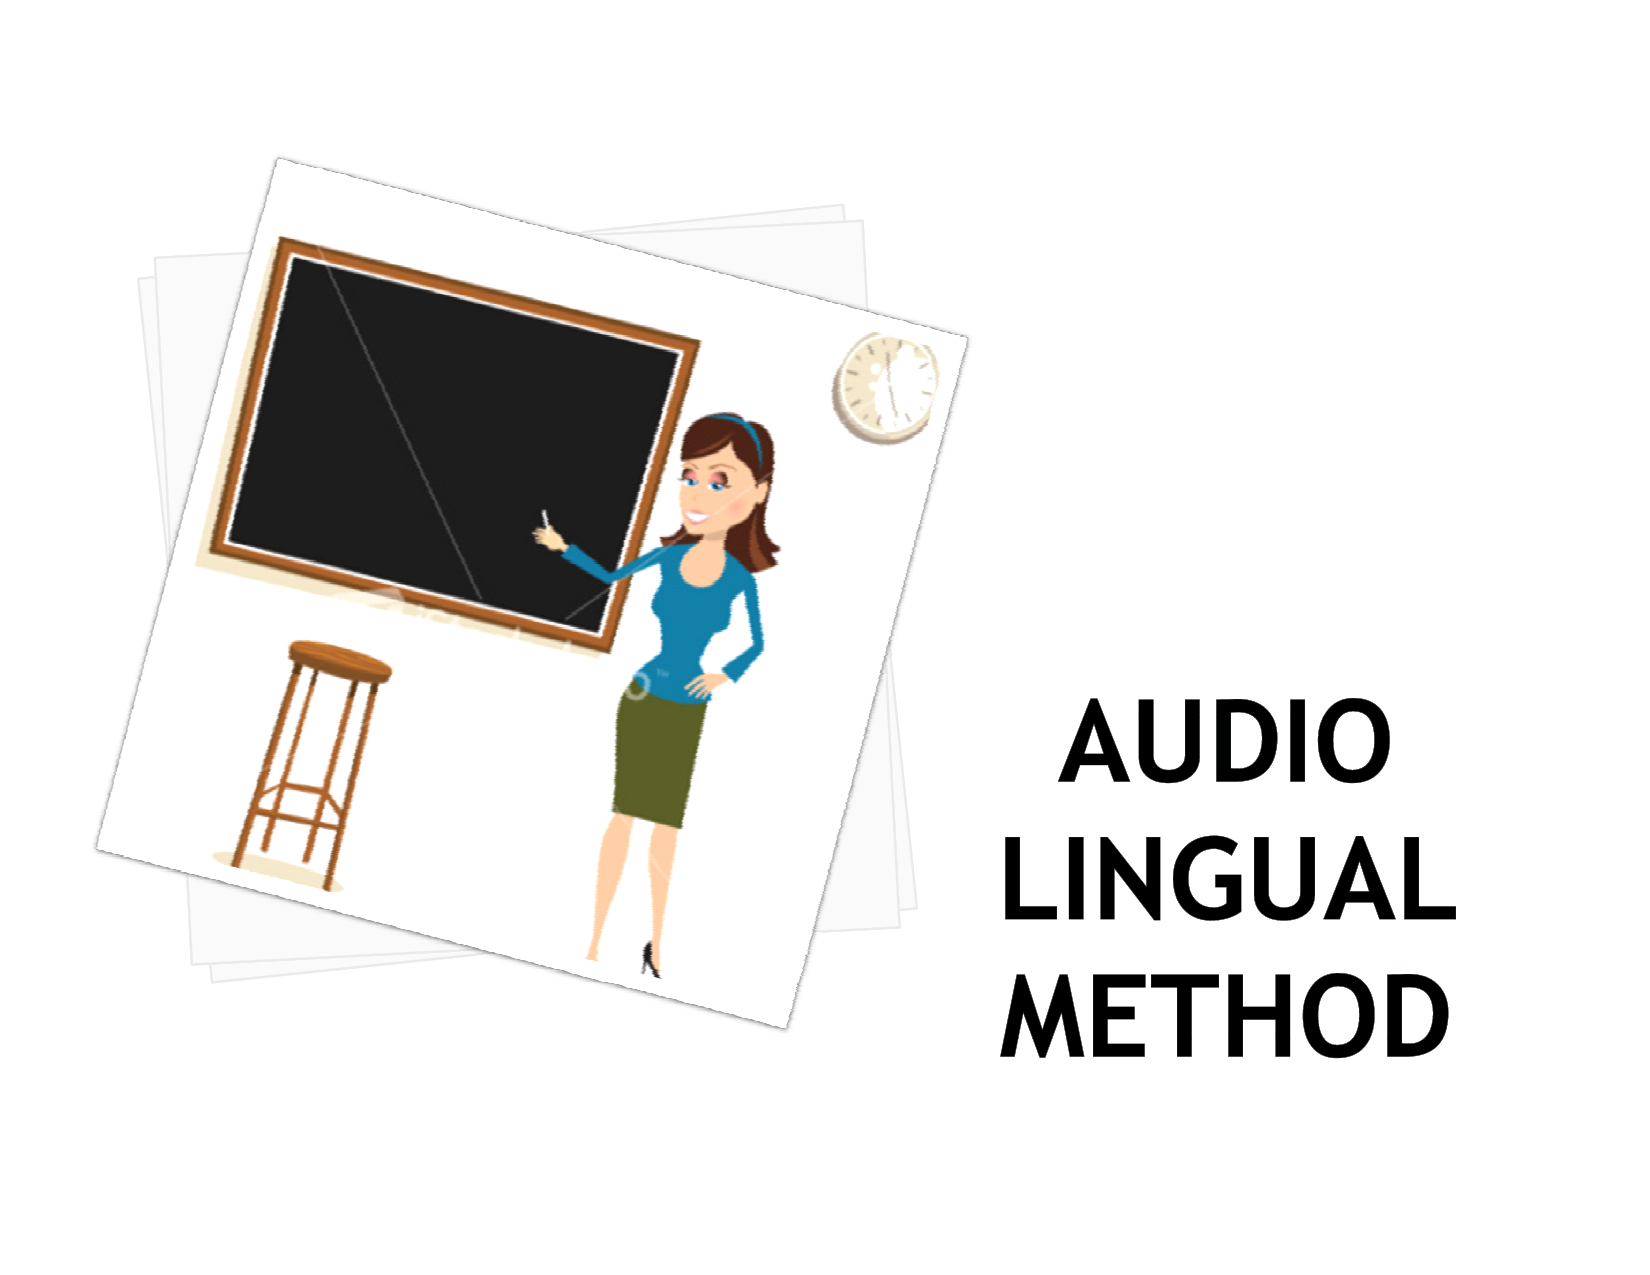 The differences between the SLT, Direct Method, and Audiolingual Method